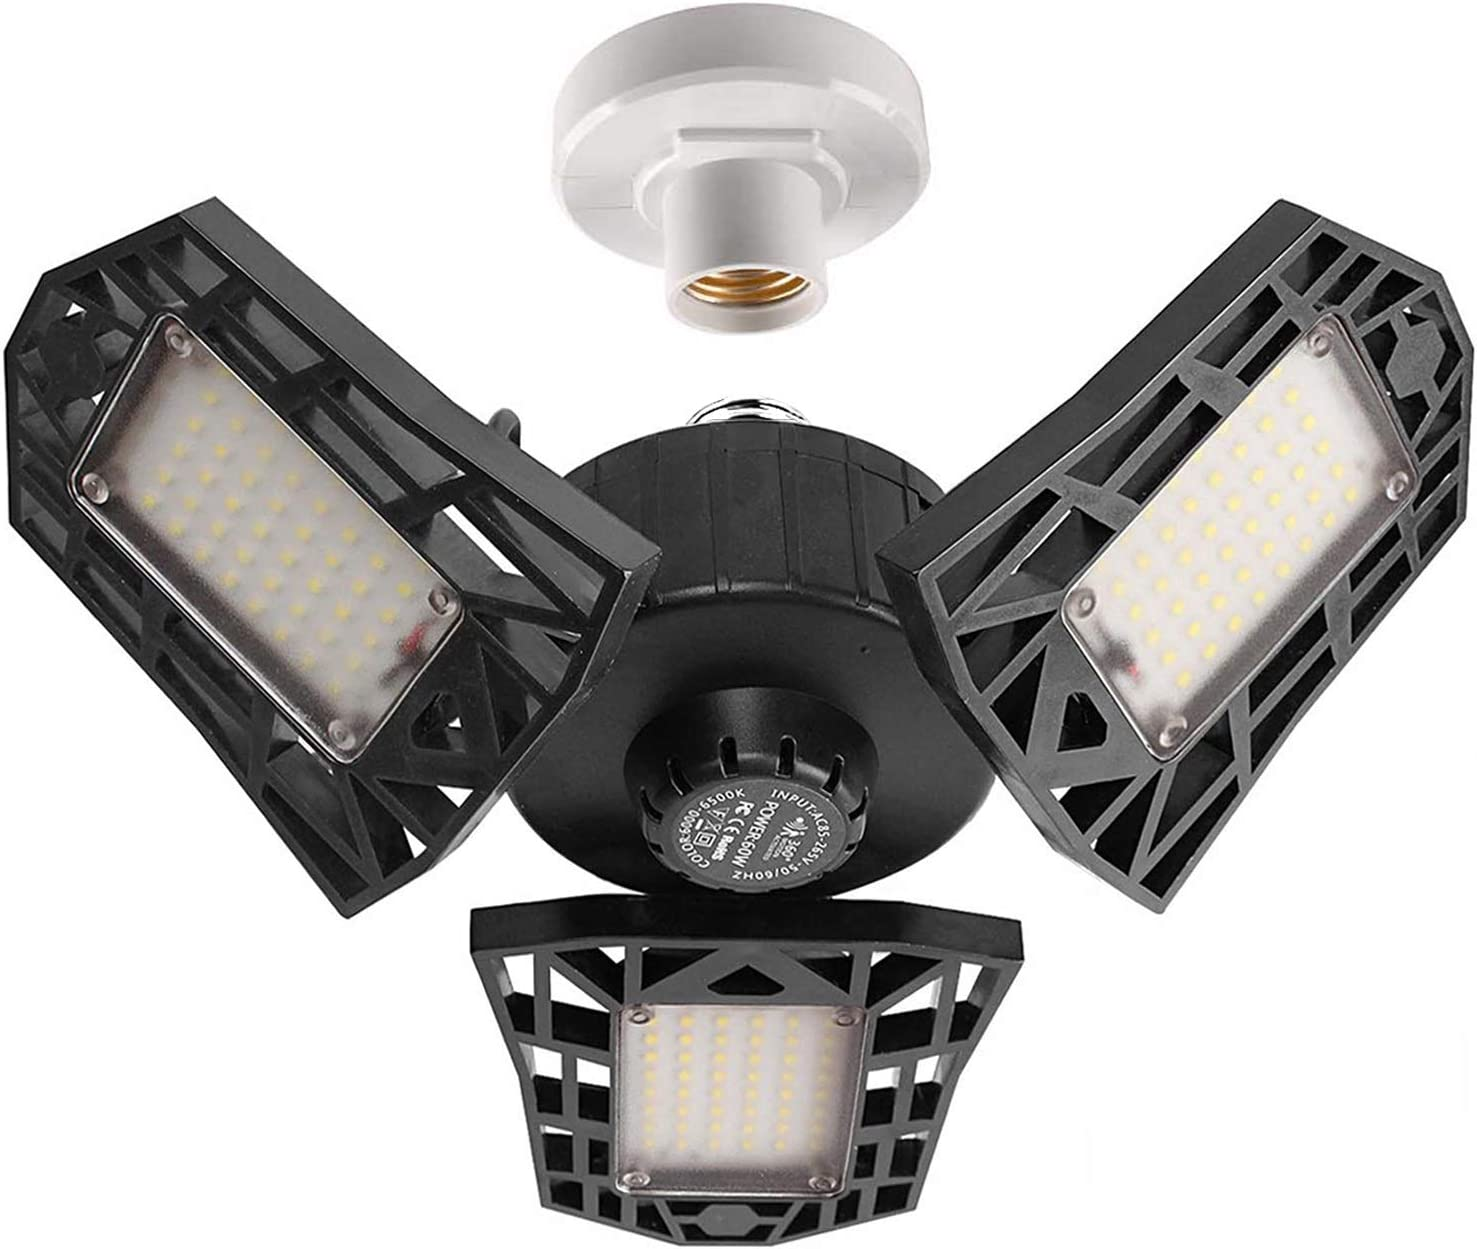 GHUSTAR 2-Pack LED Garage Lighting